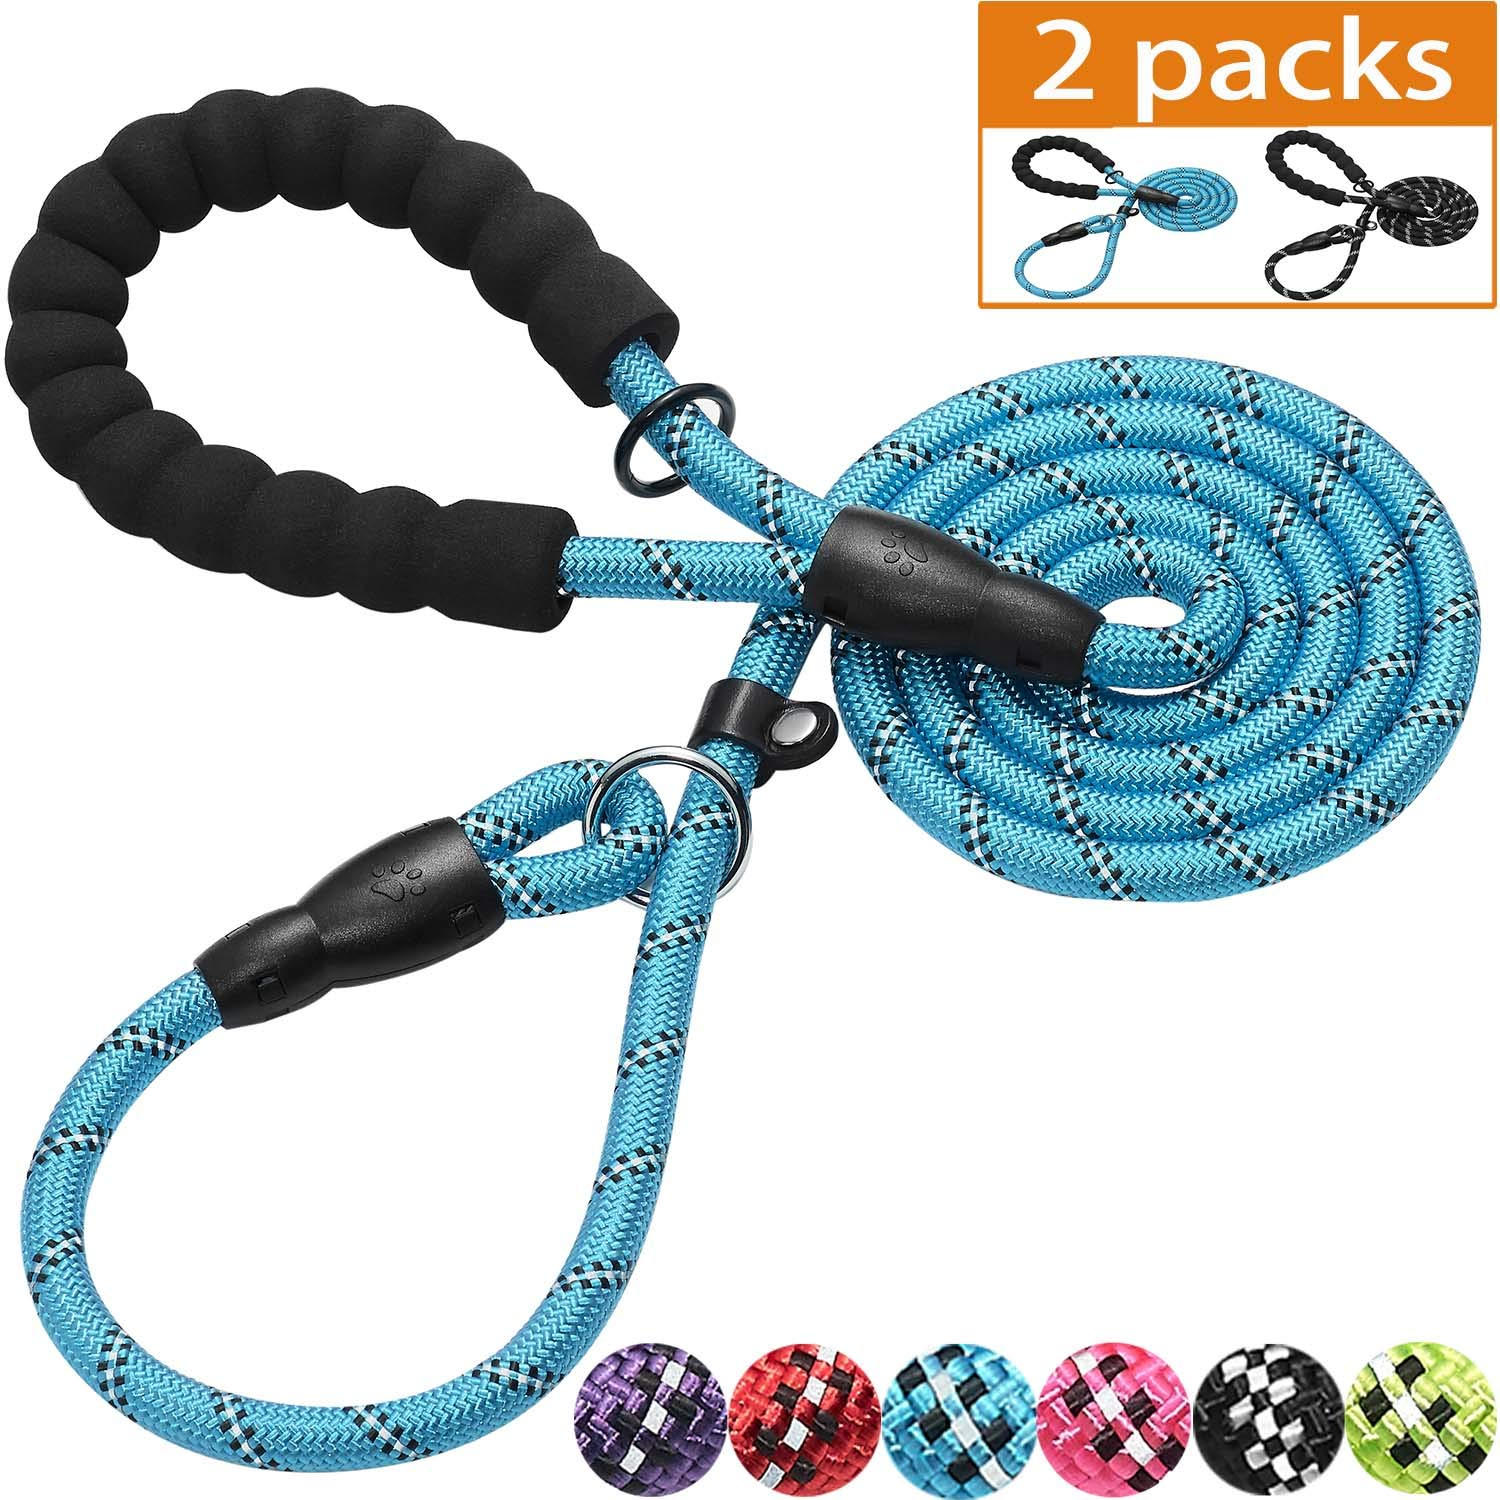 Haapaw Slip Lead Dog Leash with Comfortable Padded Handle Reflective, Mountain Climbing Rope Dog Training Leashes for Large Medium Small Dogs(2 Packs, 6 FT) (Slip Leash, Black/Blue)